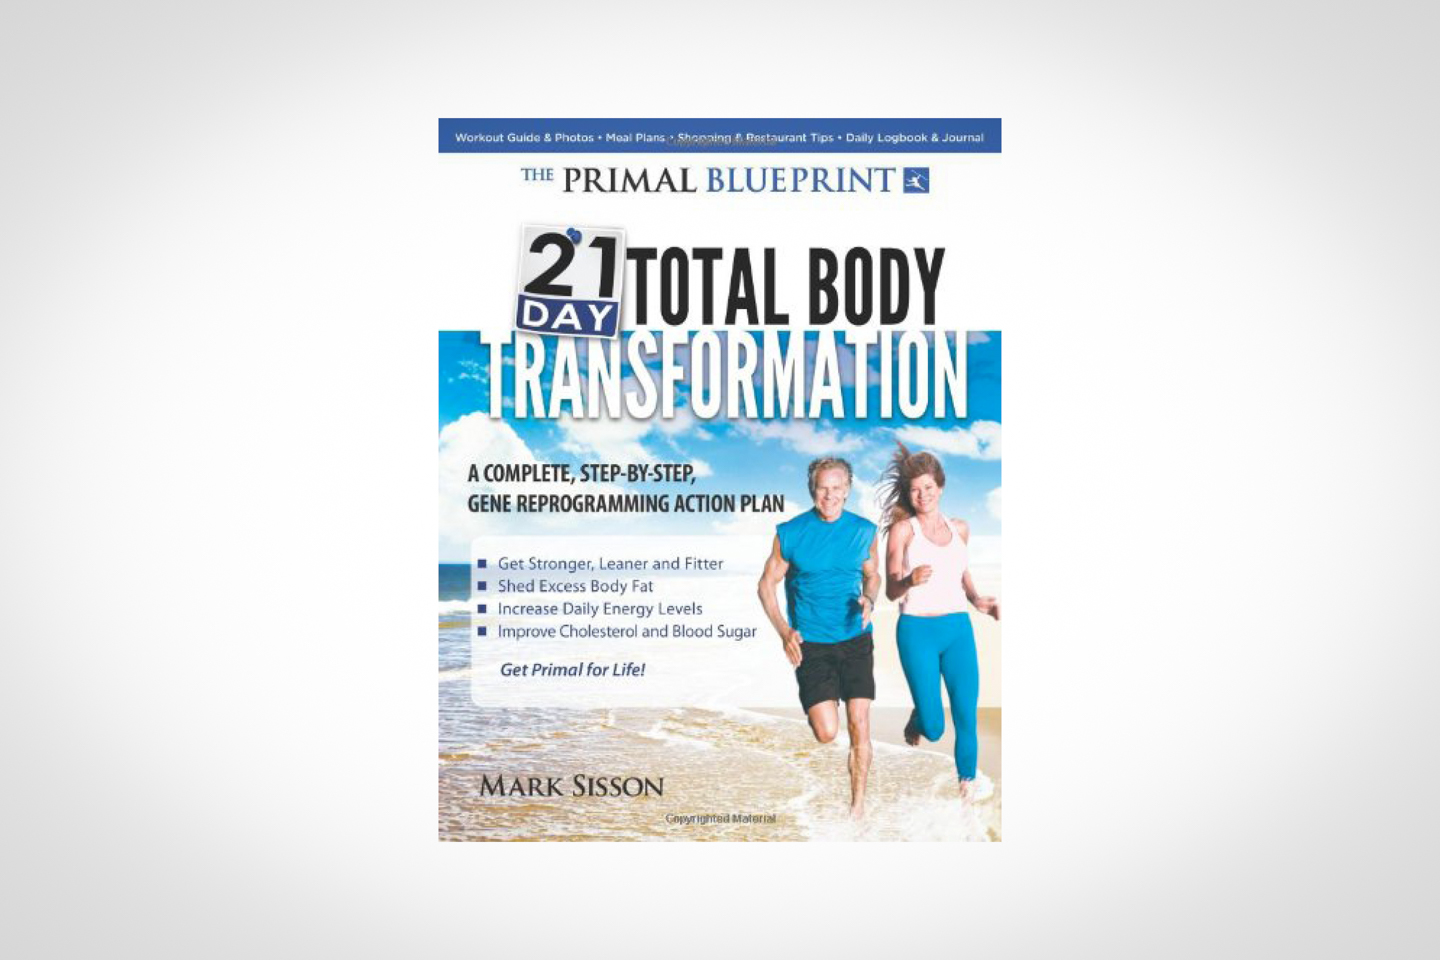 Primal Blueprint 21 Day Total Body Transformation